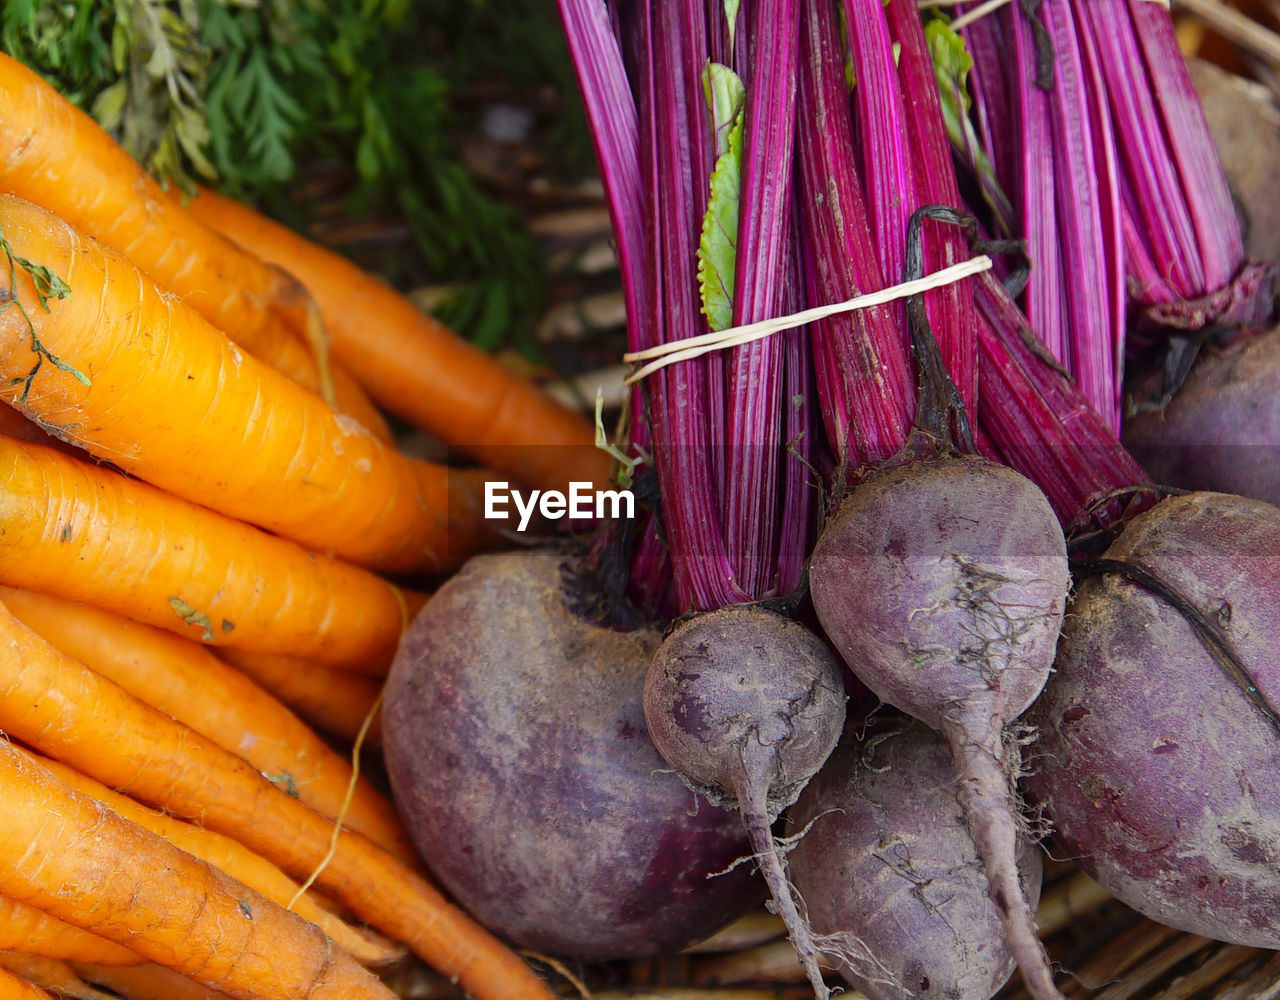 vegetable, food, food and drink, healthy eating, freshness, carrot, raw food, root vegetable, organic, large group of objects, for sale, market, retail, no people, variation, common beet, outdoors, close-up, day